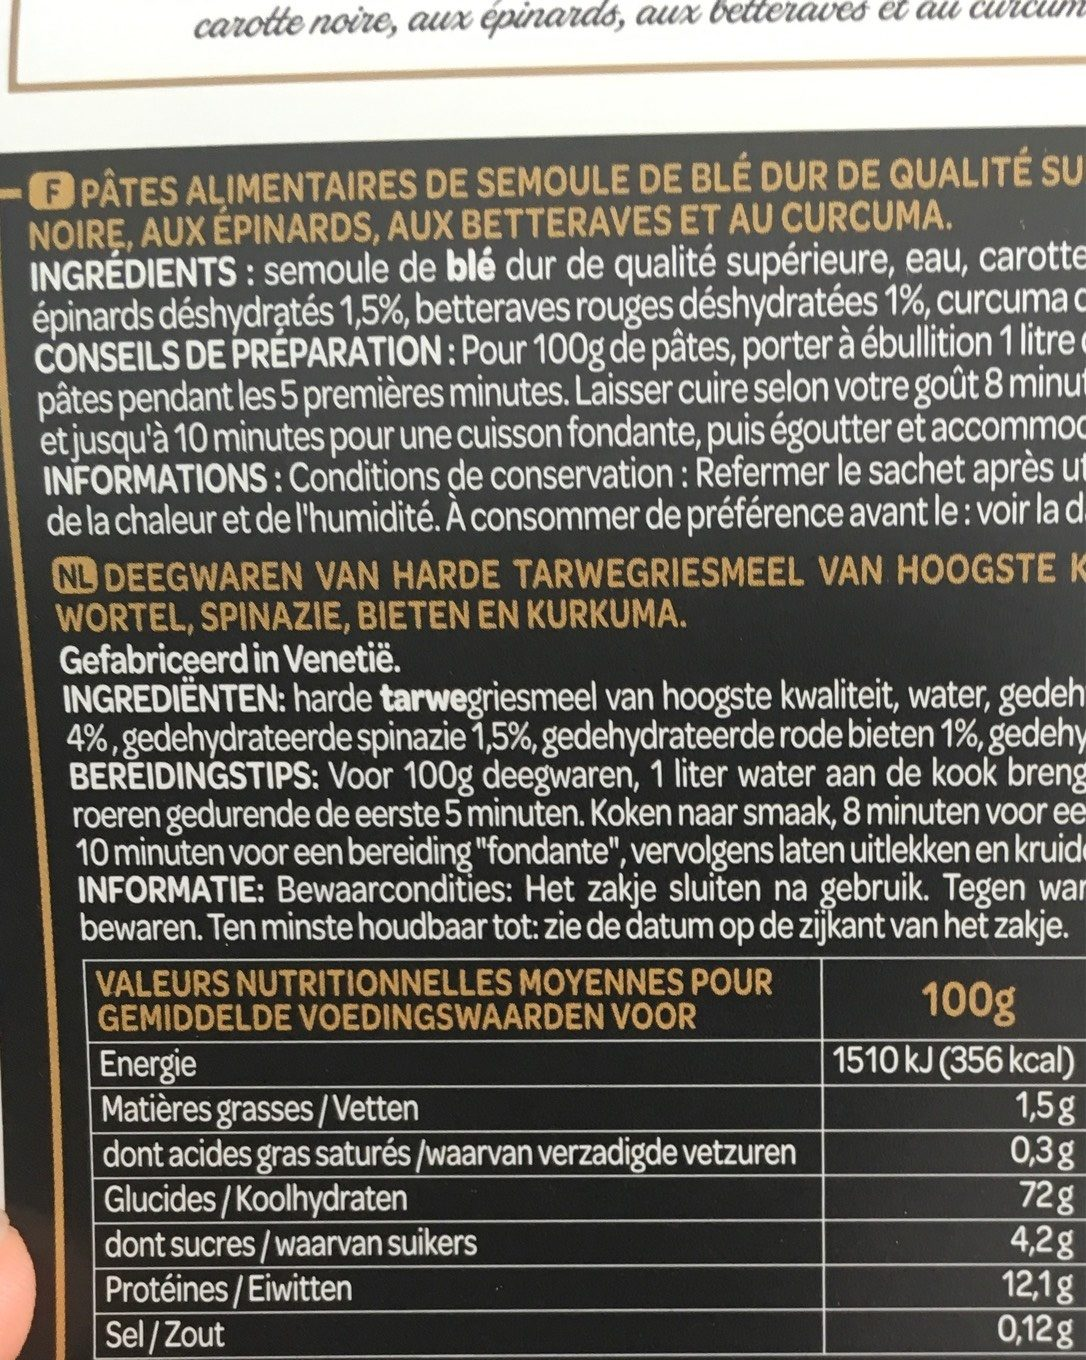 Conghiglie 5 couleurs - Nutrition facts